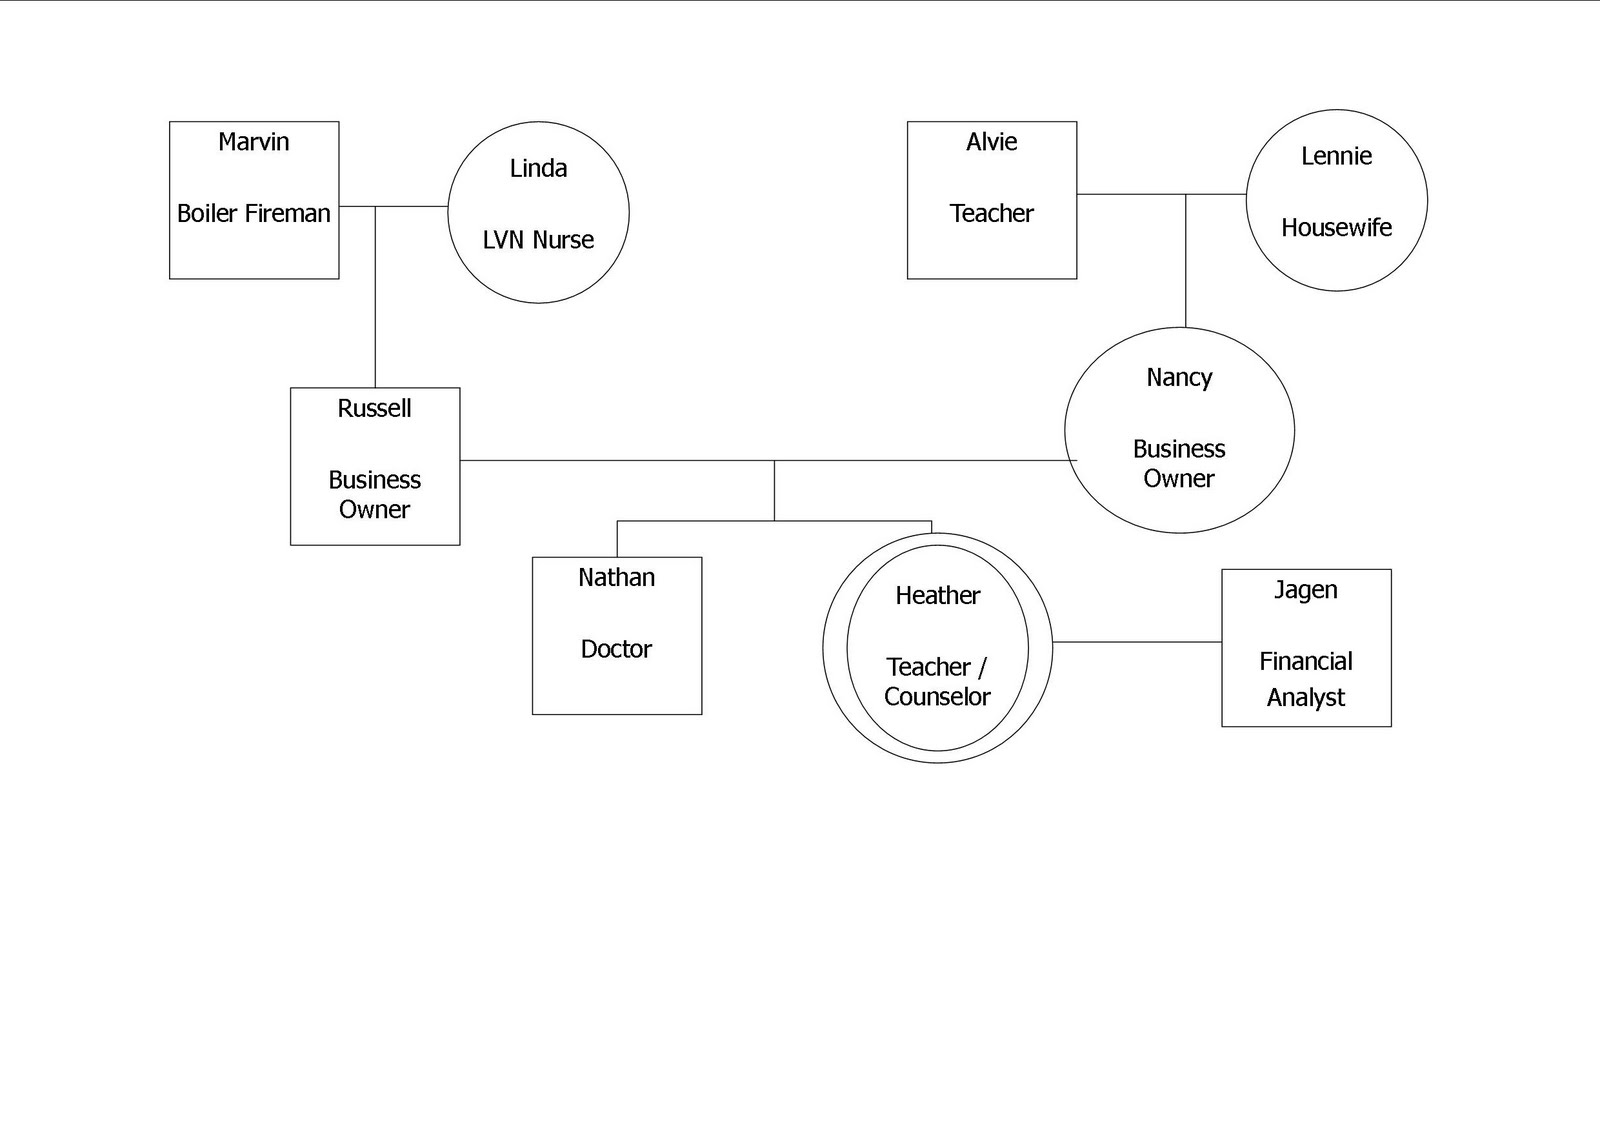 Heather Chaney Genogram Project Reflections